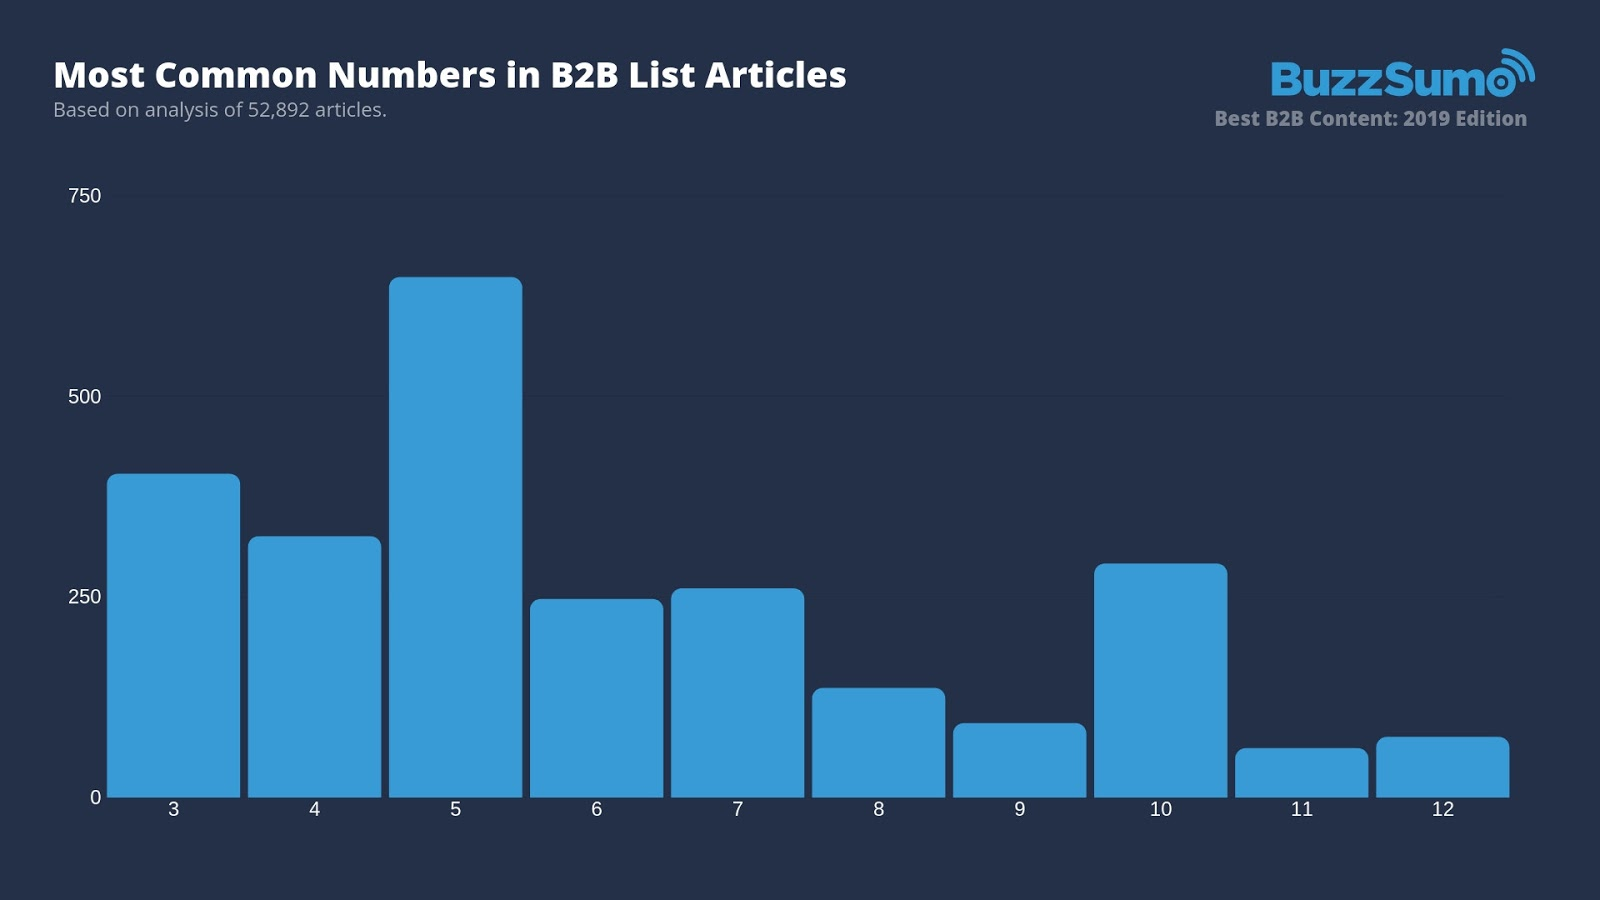 Most-Common-Numbers-in-B2B-List-Articles